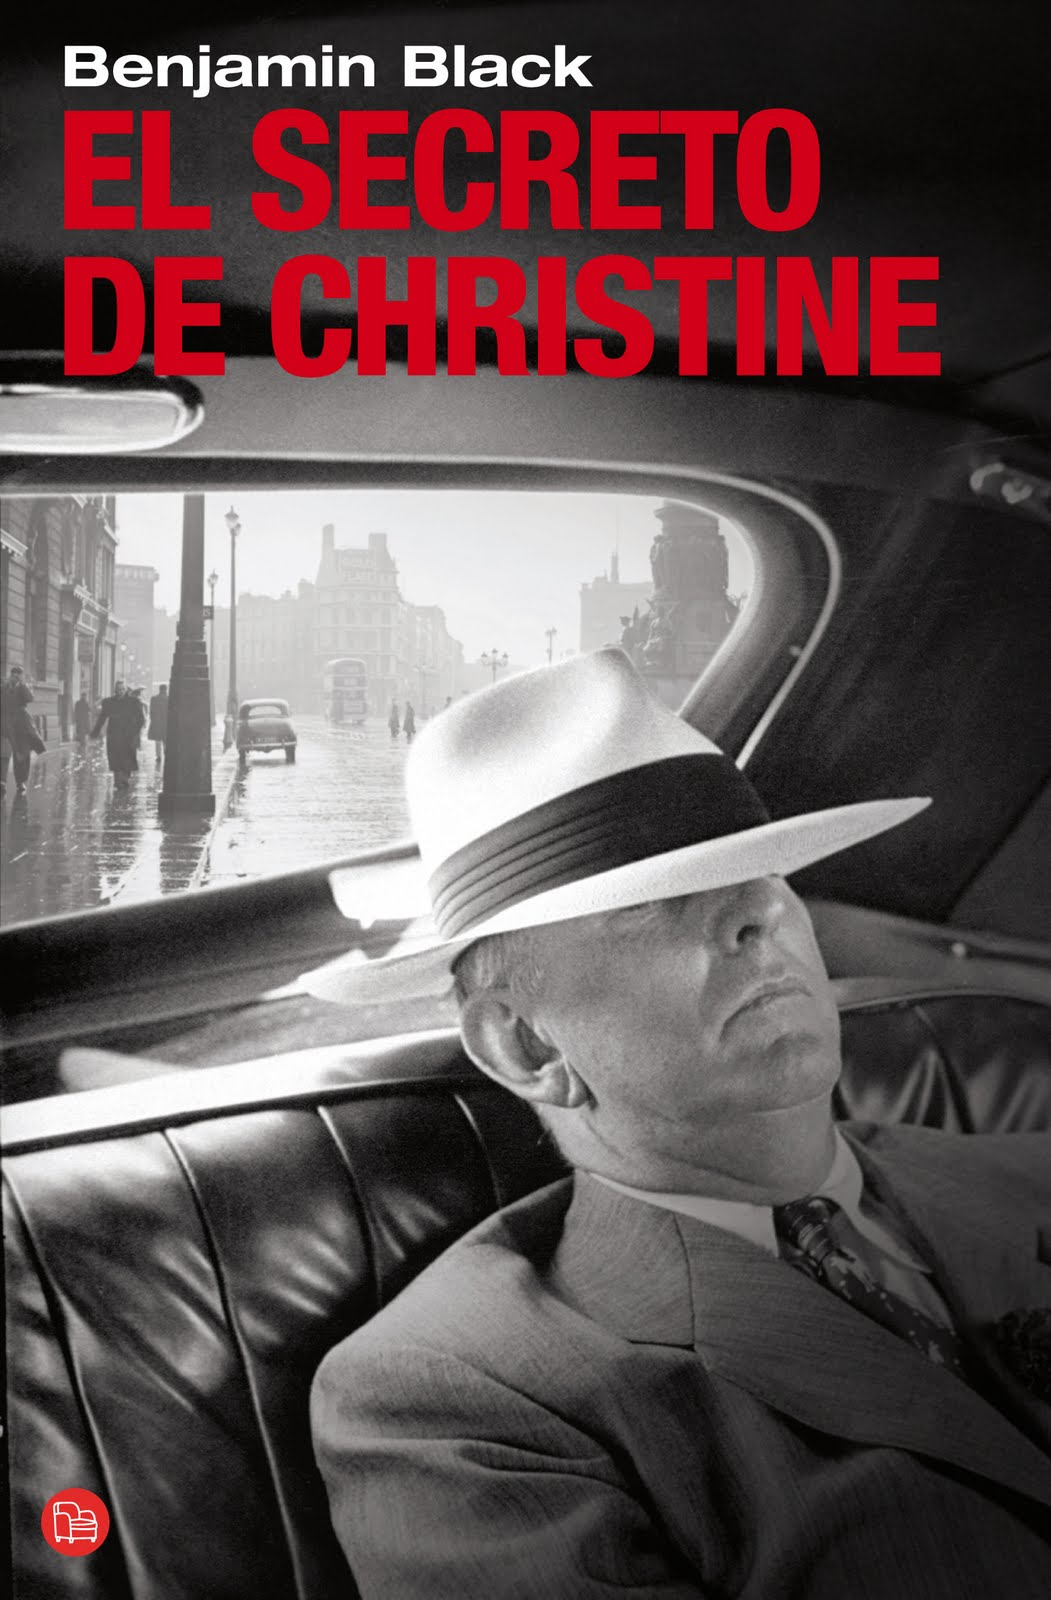 El secreto de Christine - Benjamin Black  Secreto-christine